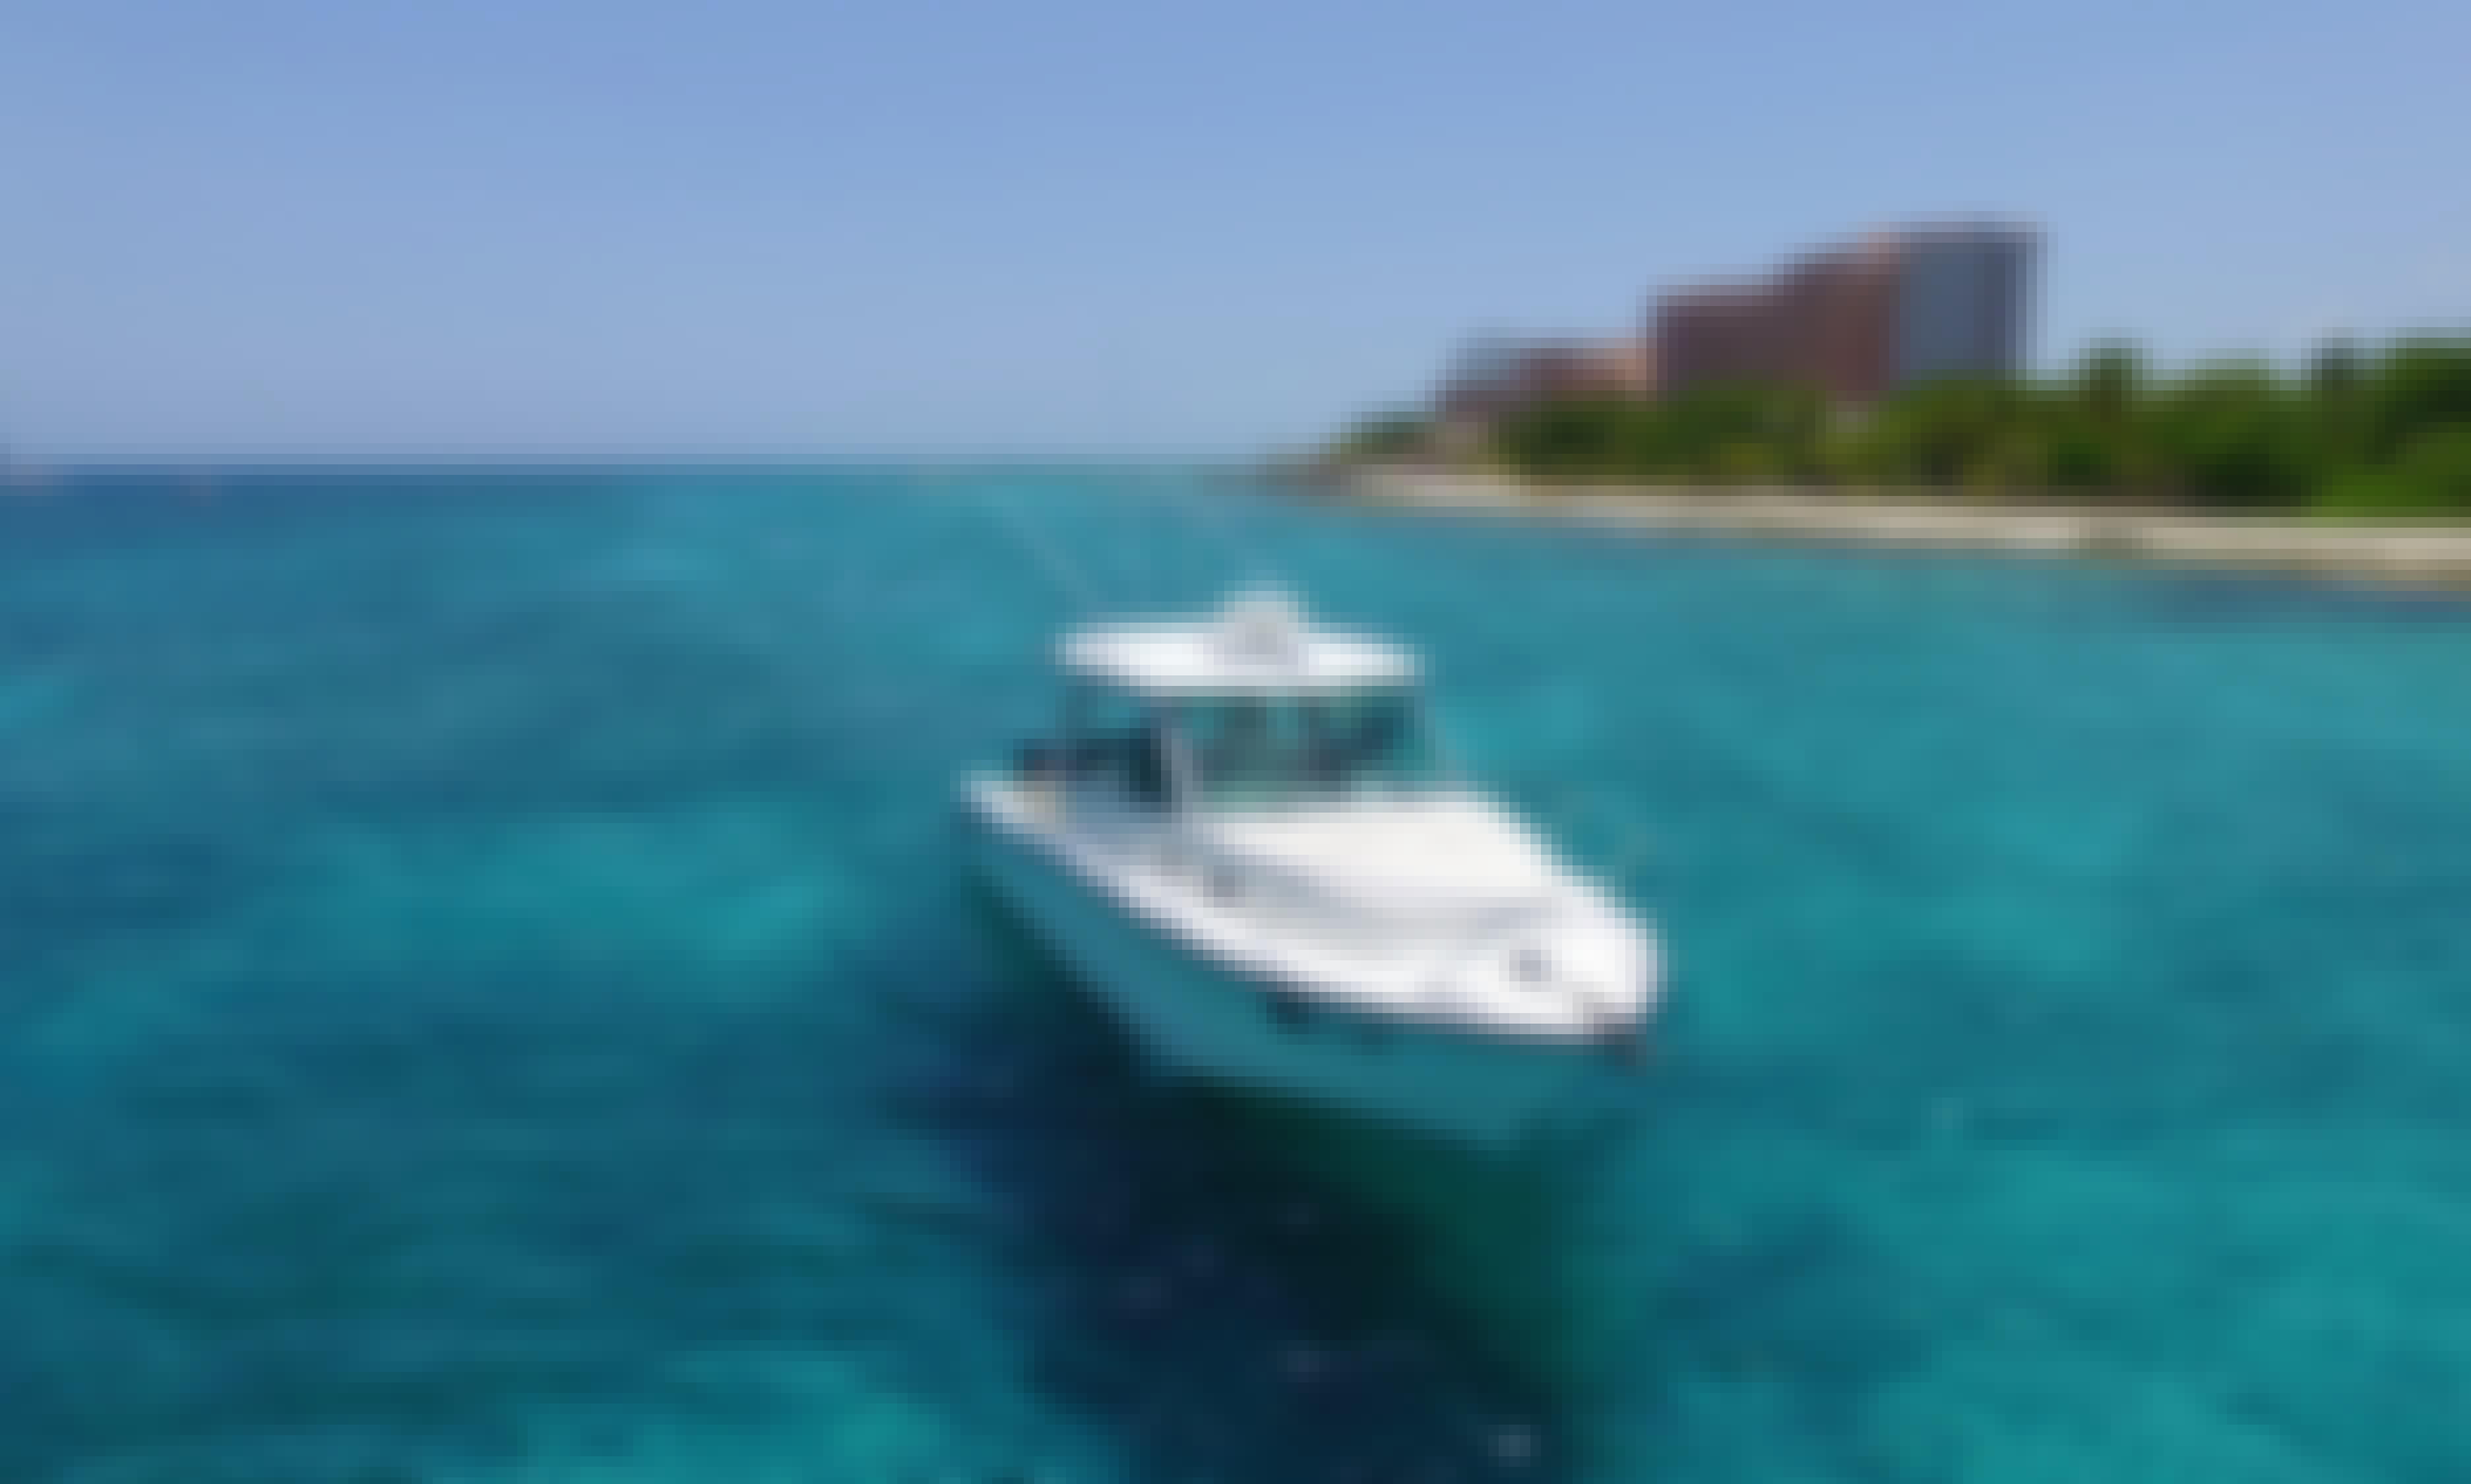 Exclusive Boat Tour in El Cielo, Cozumel Island onboard 37' Boston Whaler for 10 passengers